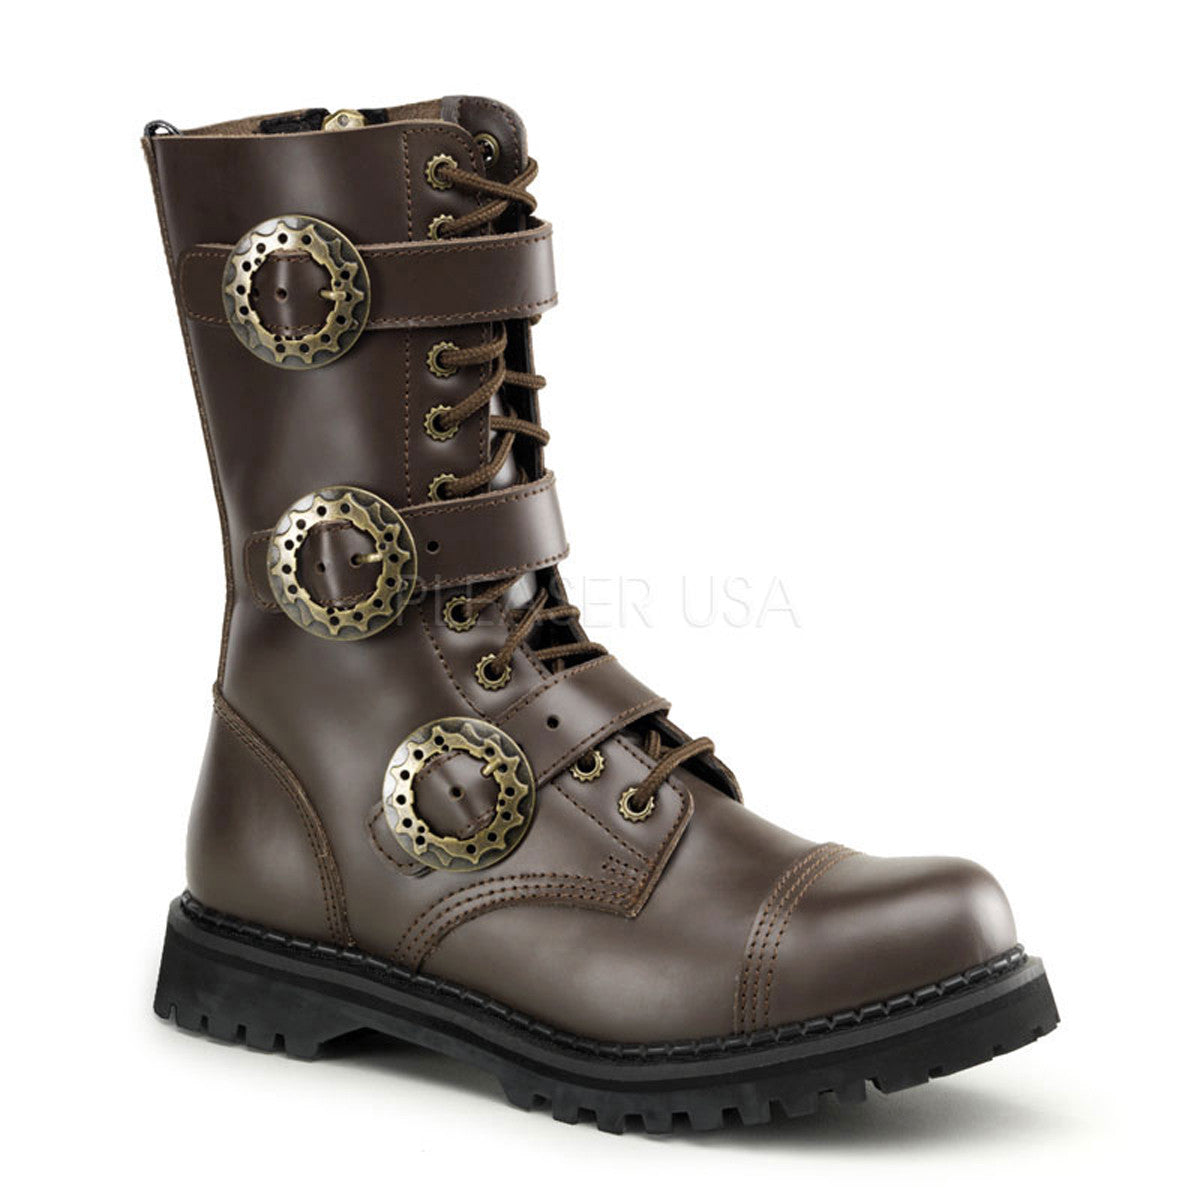 Demonia,DEMONIA STEAM-12 Men's Brown Leather Steampunk Boots - Shoecup.com